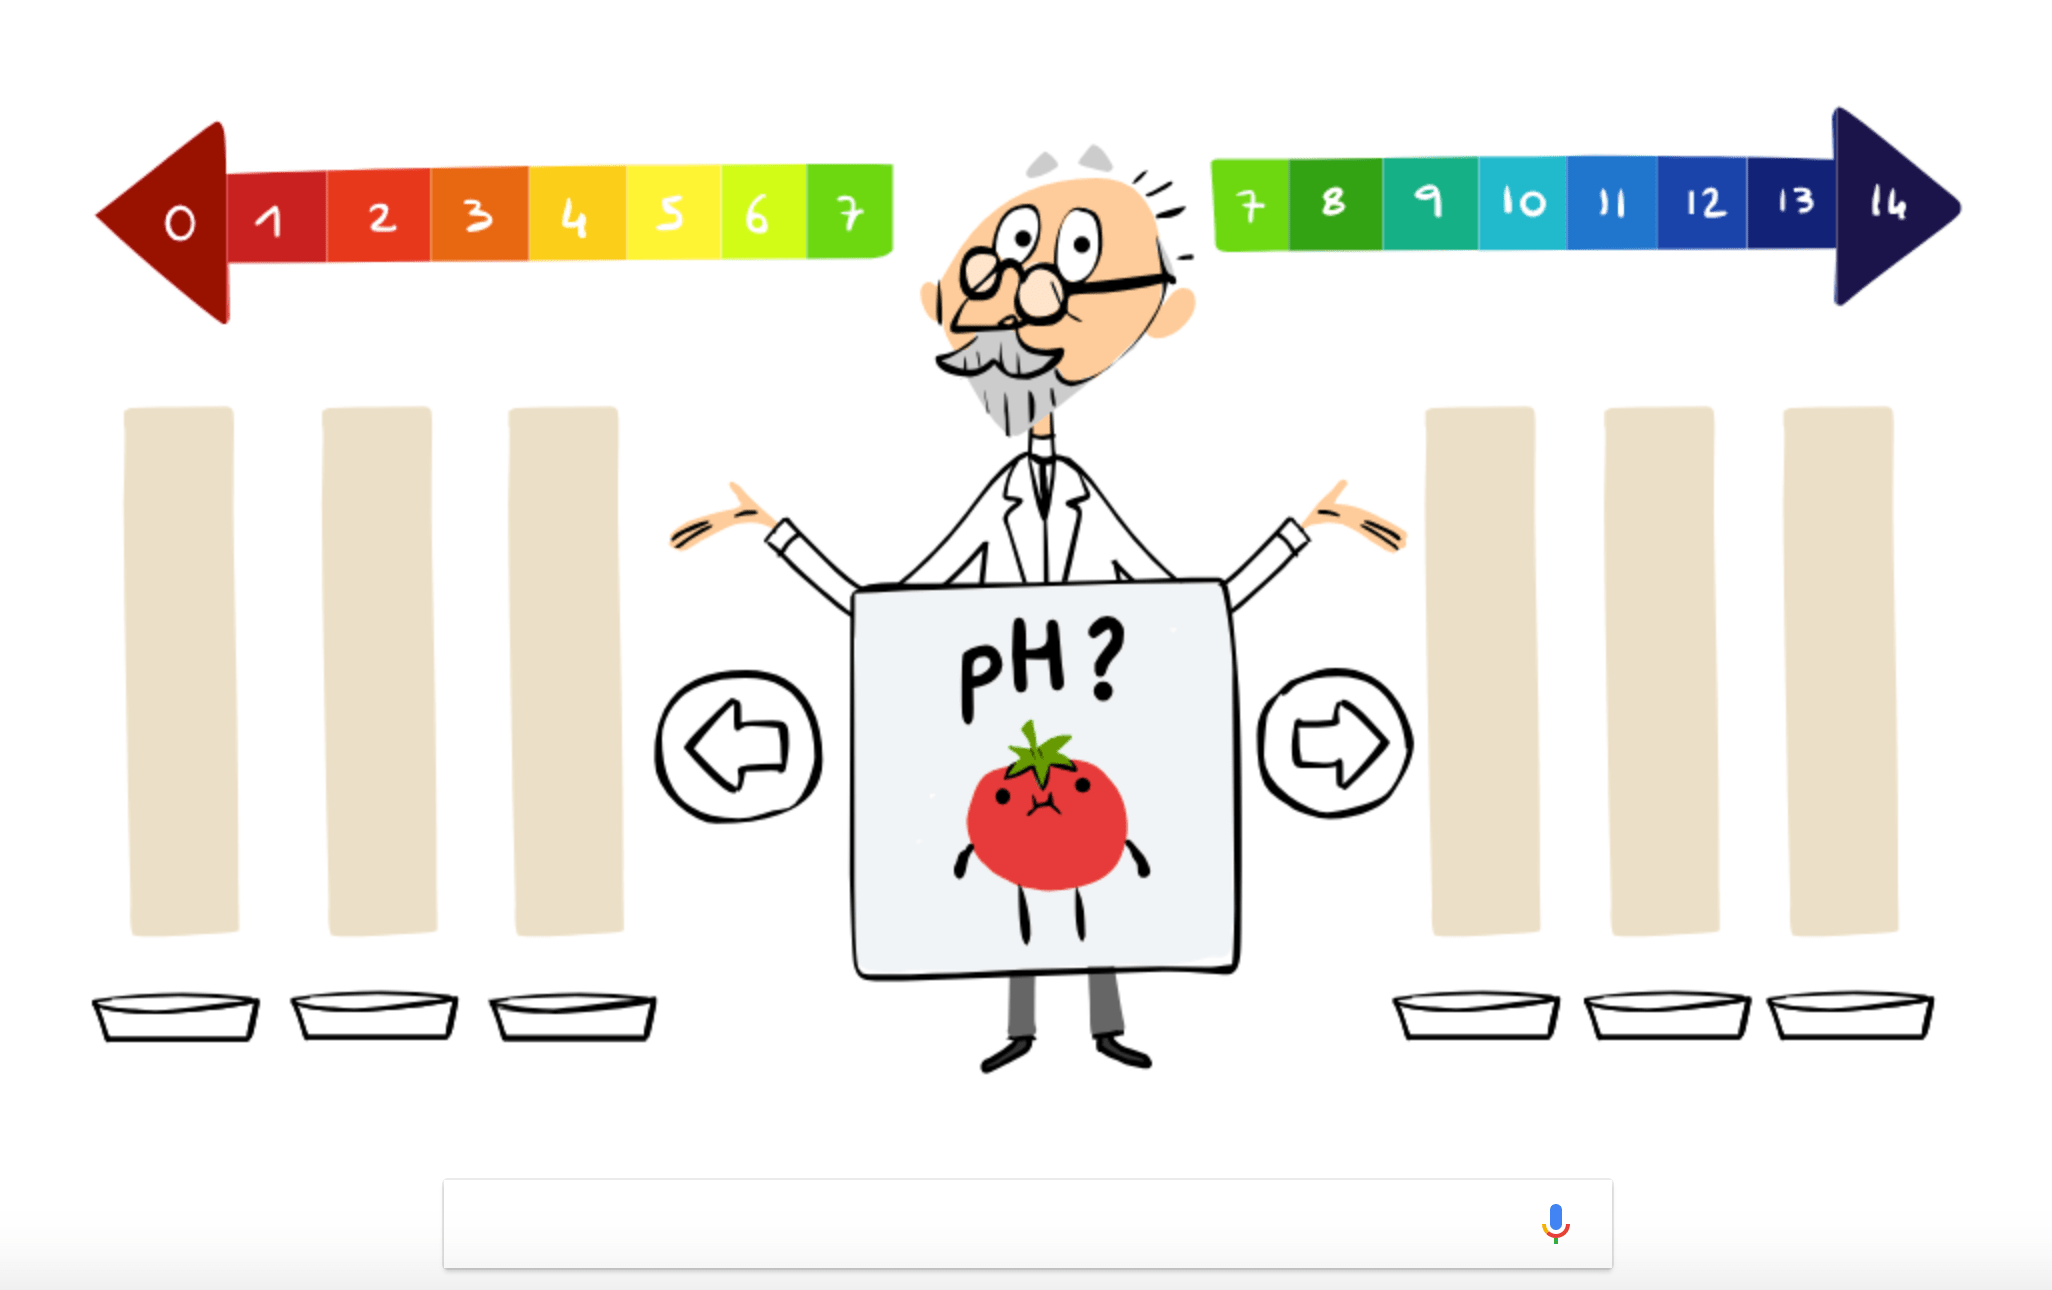 Google Doodle Games Test Your Ph Scale Knowledge With This Interactive Doodle About S P L Sørensen